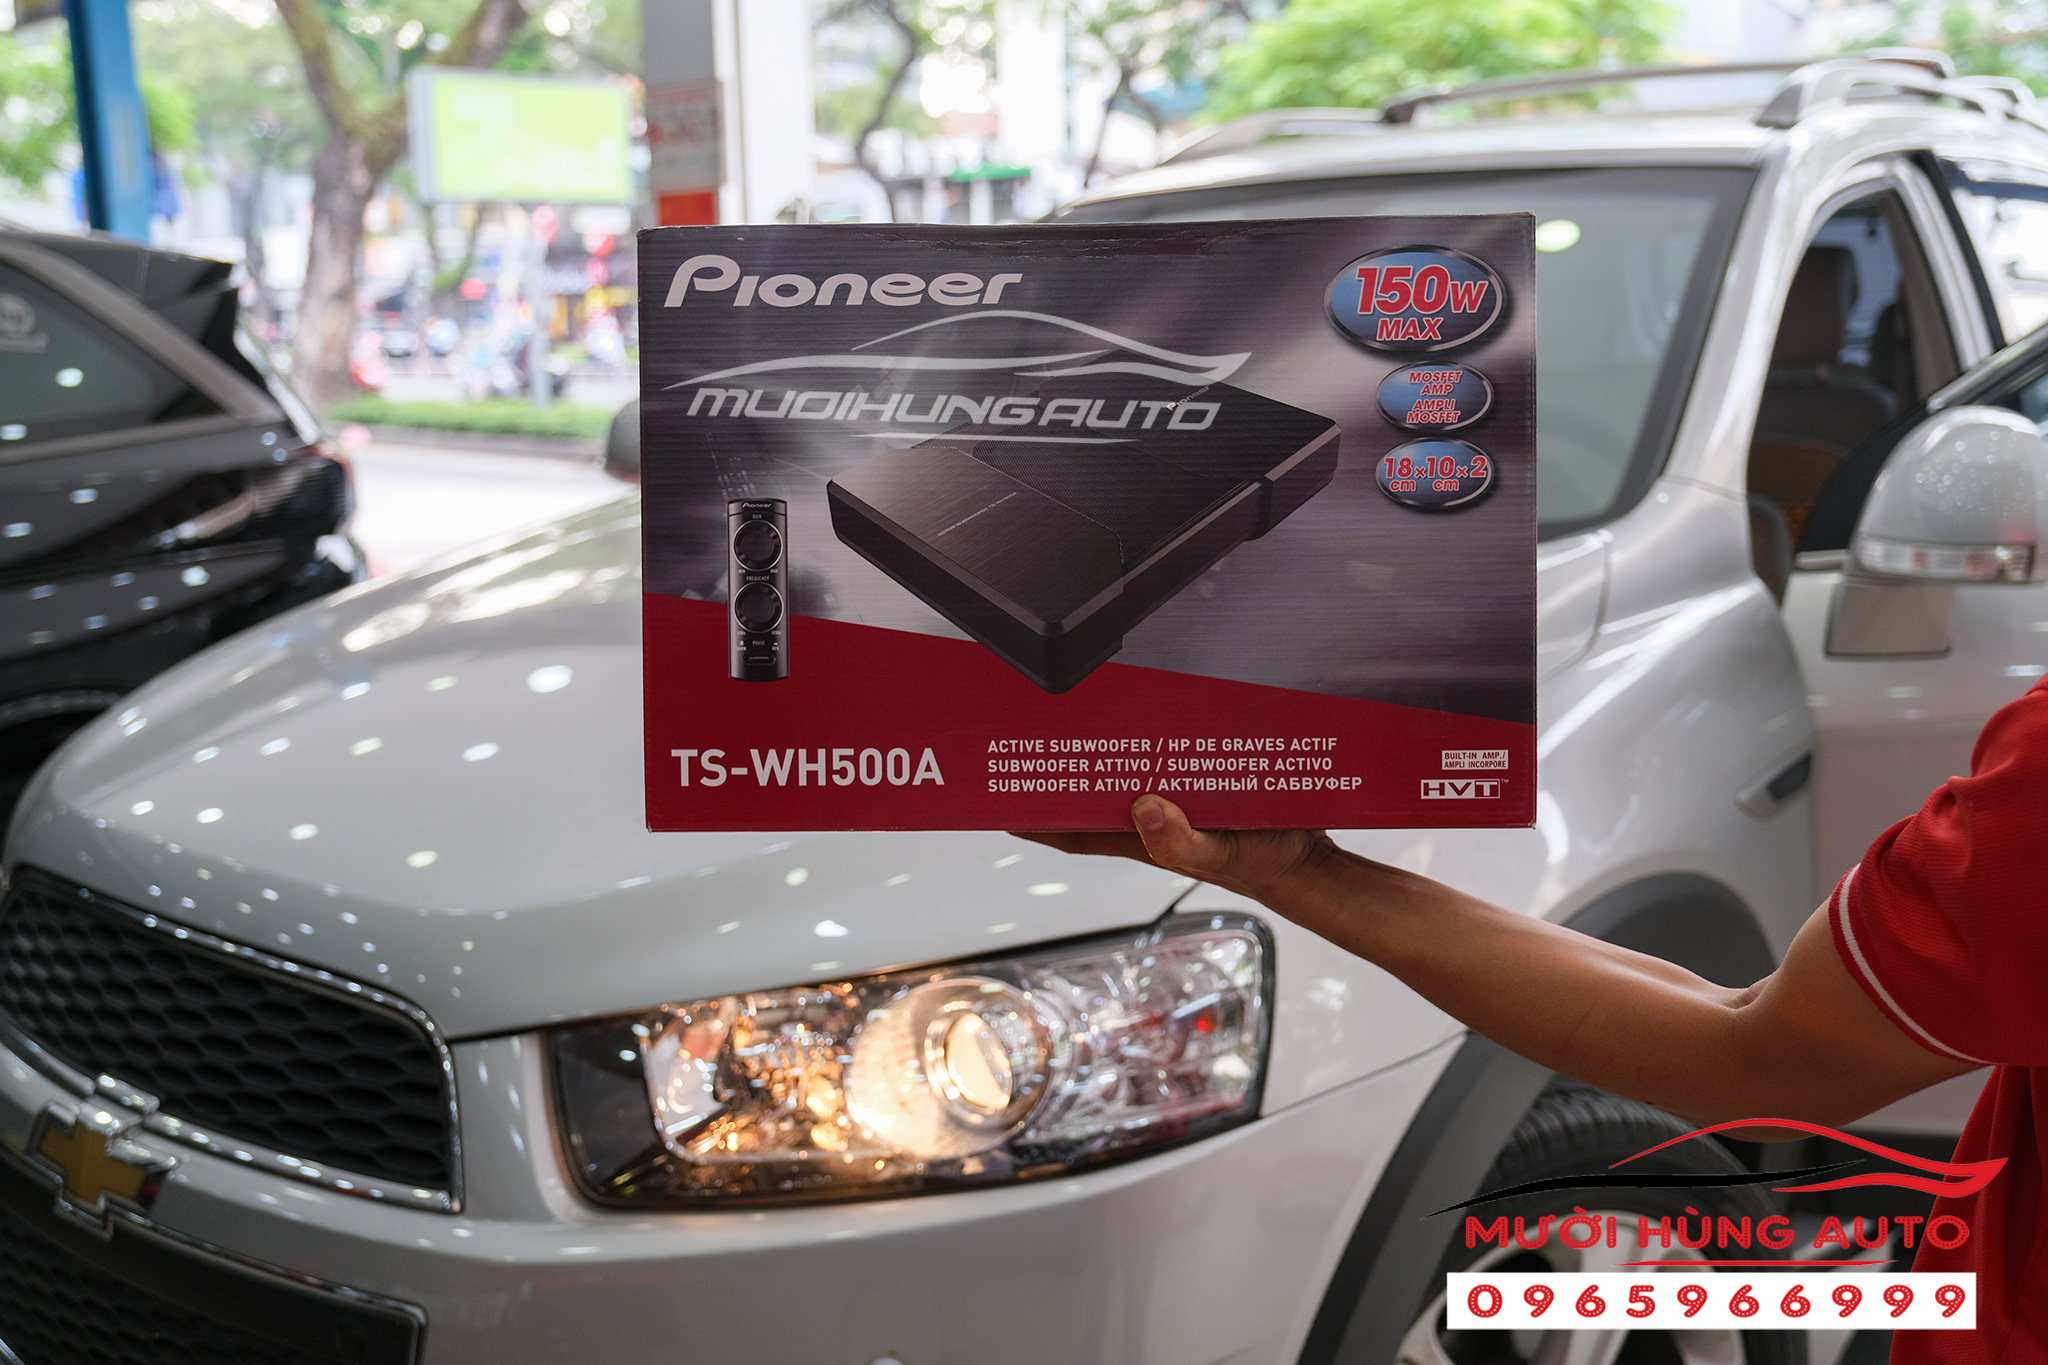 lắp đặt sub Pioneer TS-WH500A xe Chevrolet Captiva